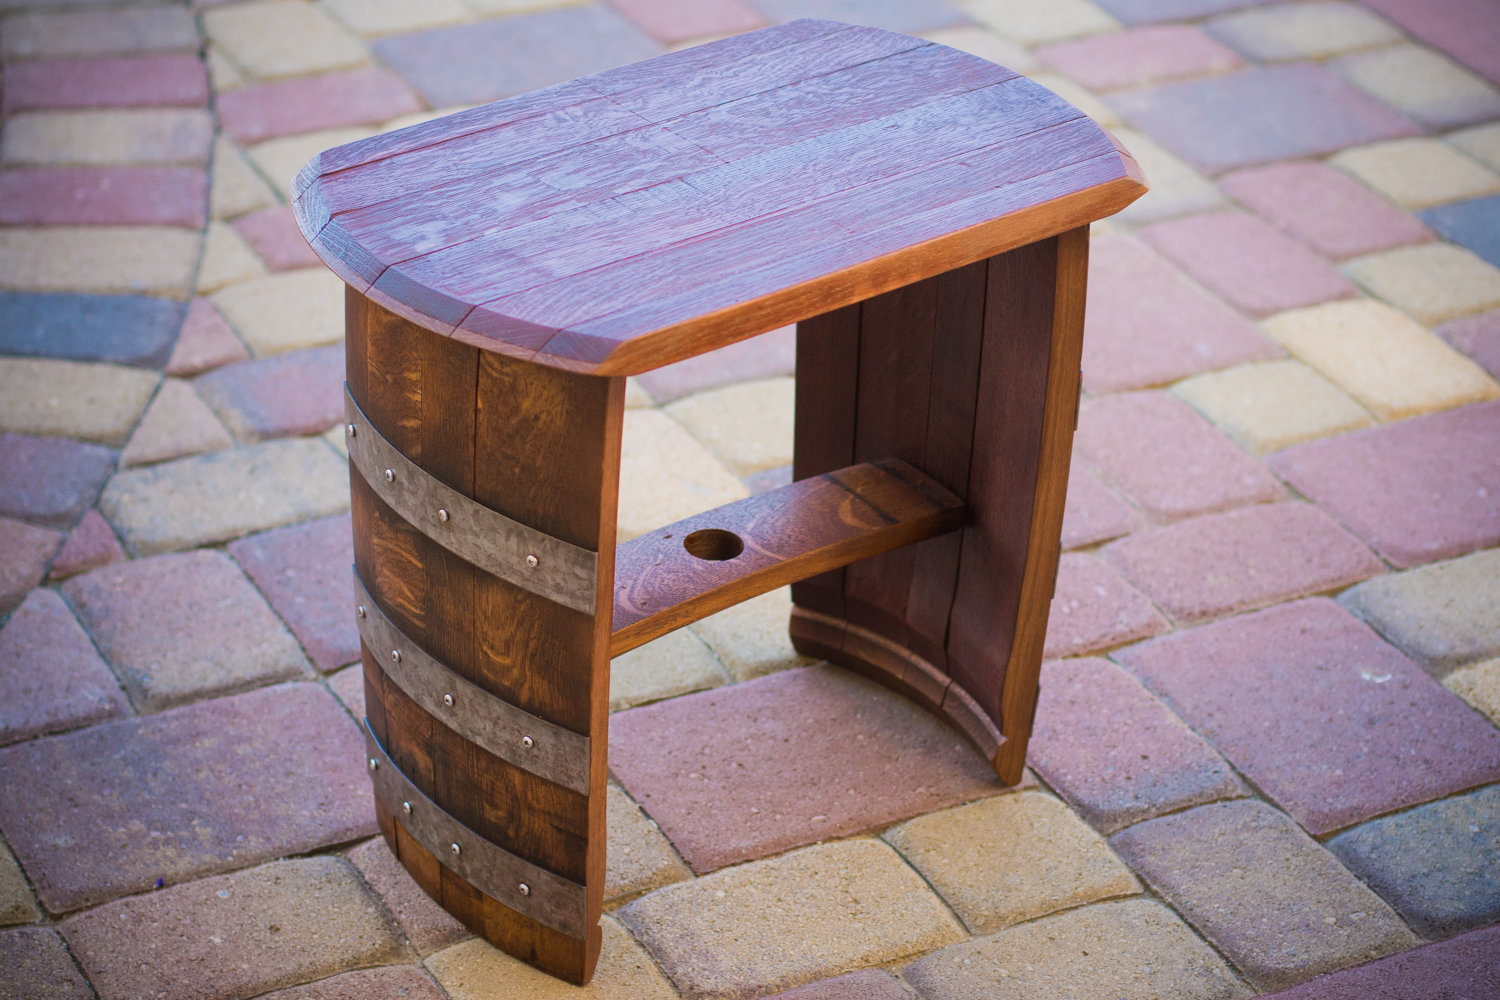 adirondack chair kit lightweight camp chairs 15 cool diy projects from recycled wine barrel wood - style motivation